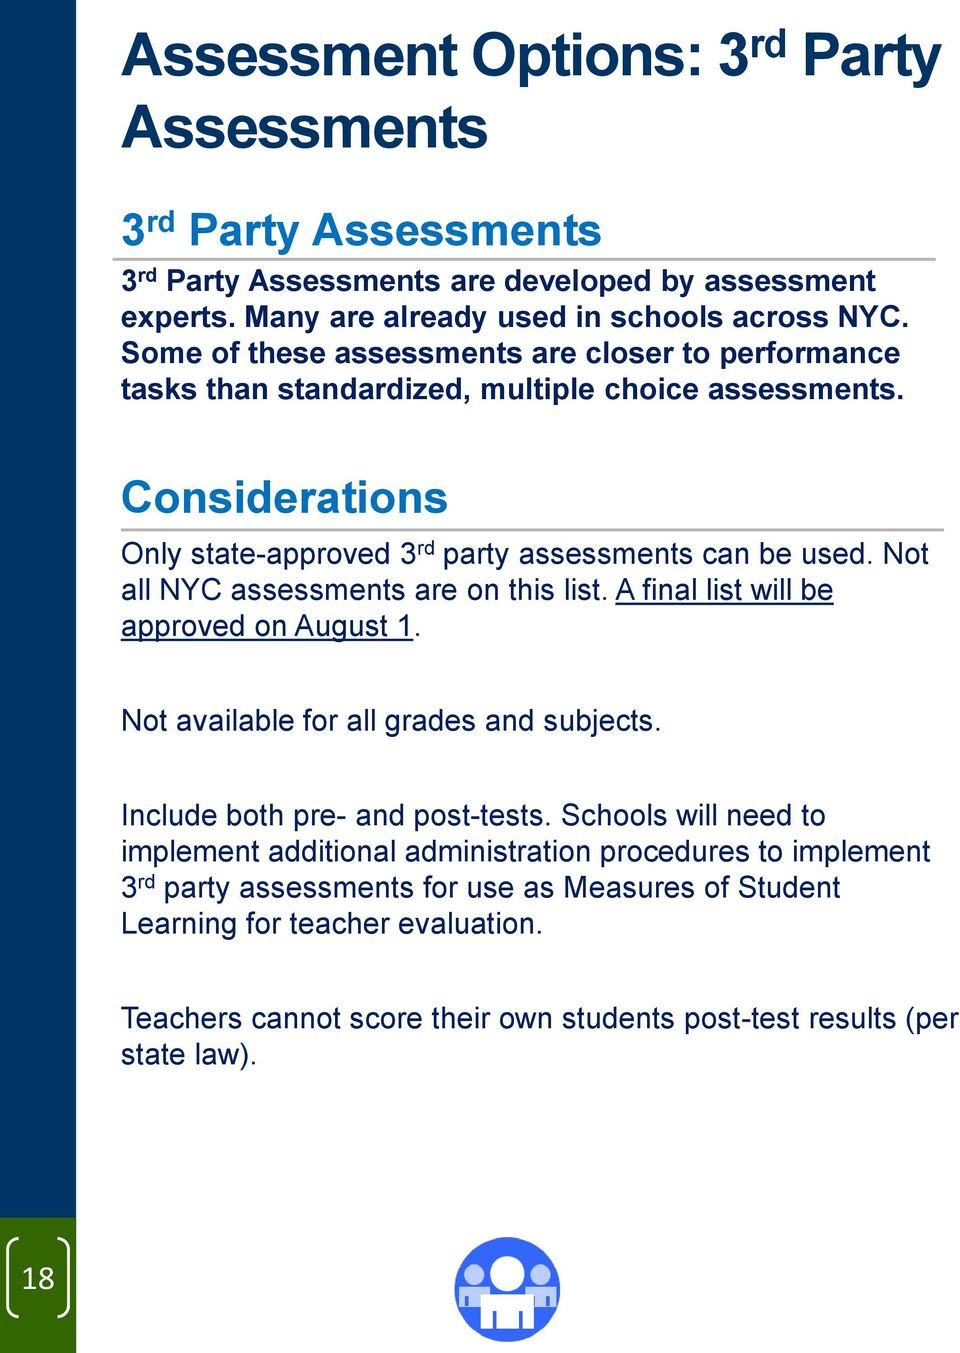 Not all NYC assessments are on this list. A final list will be approved on August 1. Not available for all grades and subjects. Include both pre- and post-tests.